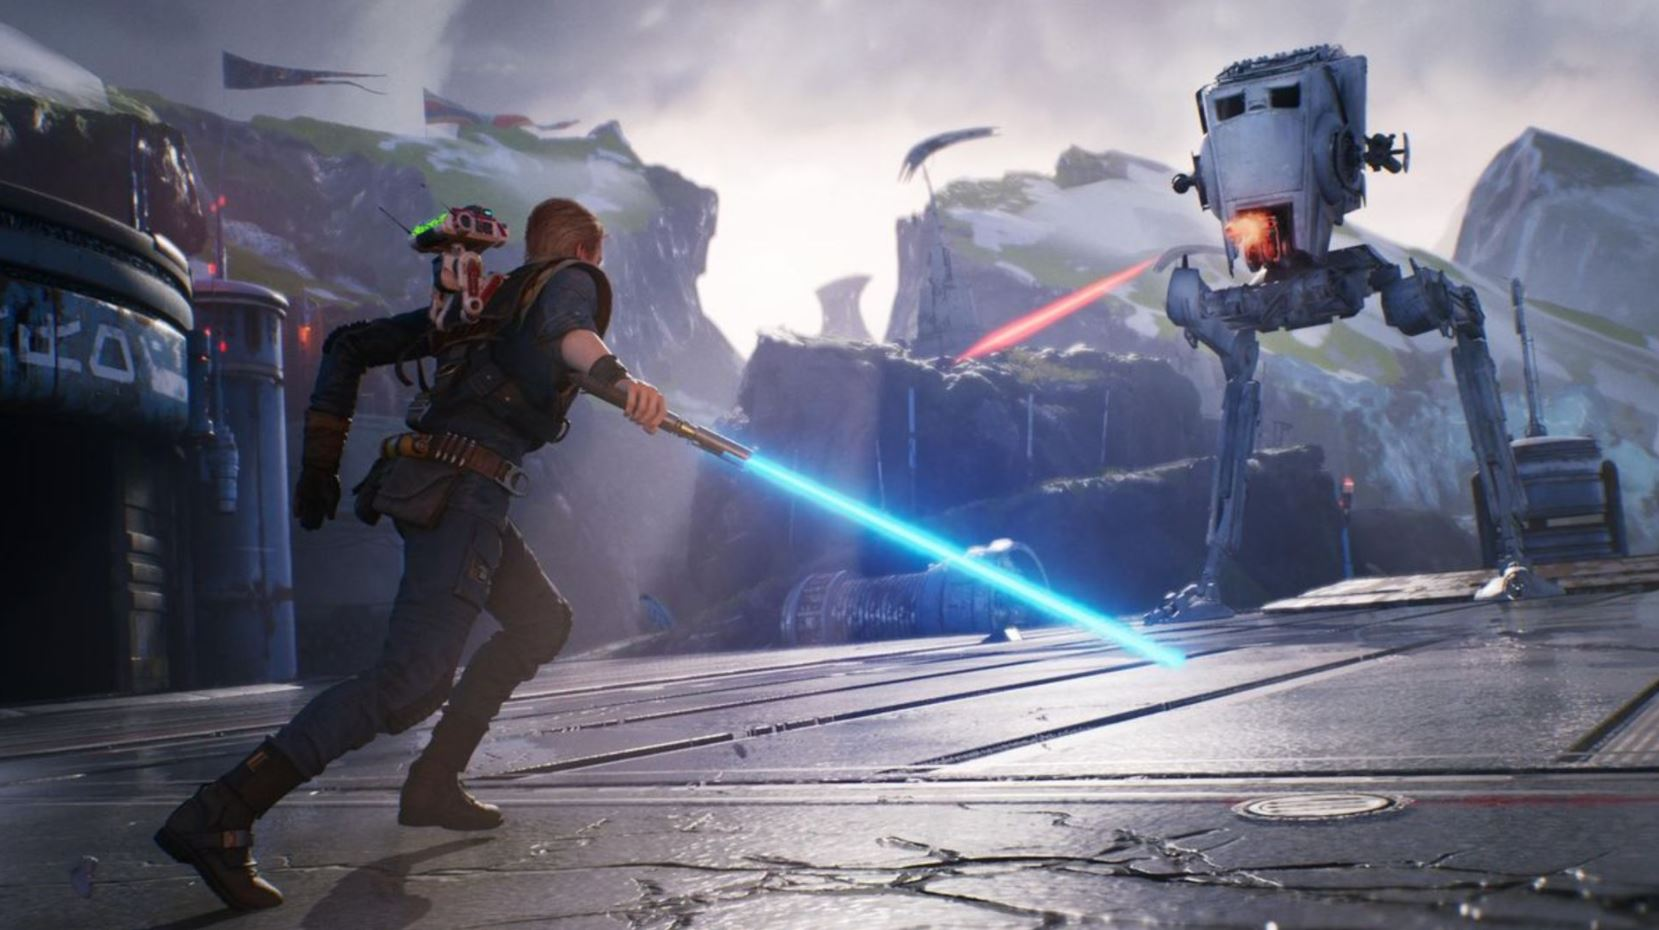 star-wars-jedi-fallen-order-ps5-update-breakdown-shows-game-looks-virtually-identical-to-xbox-series-x